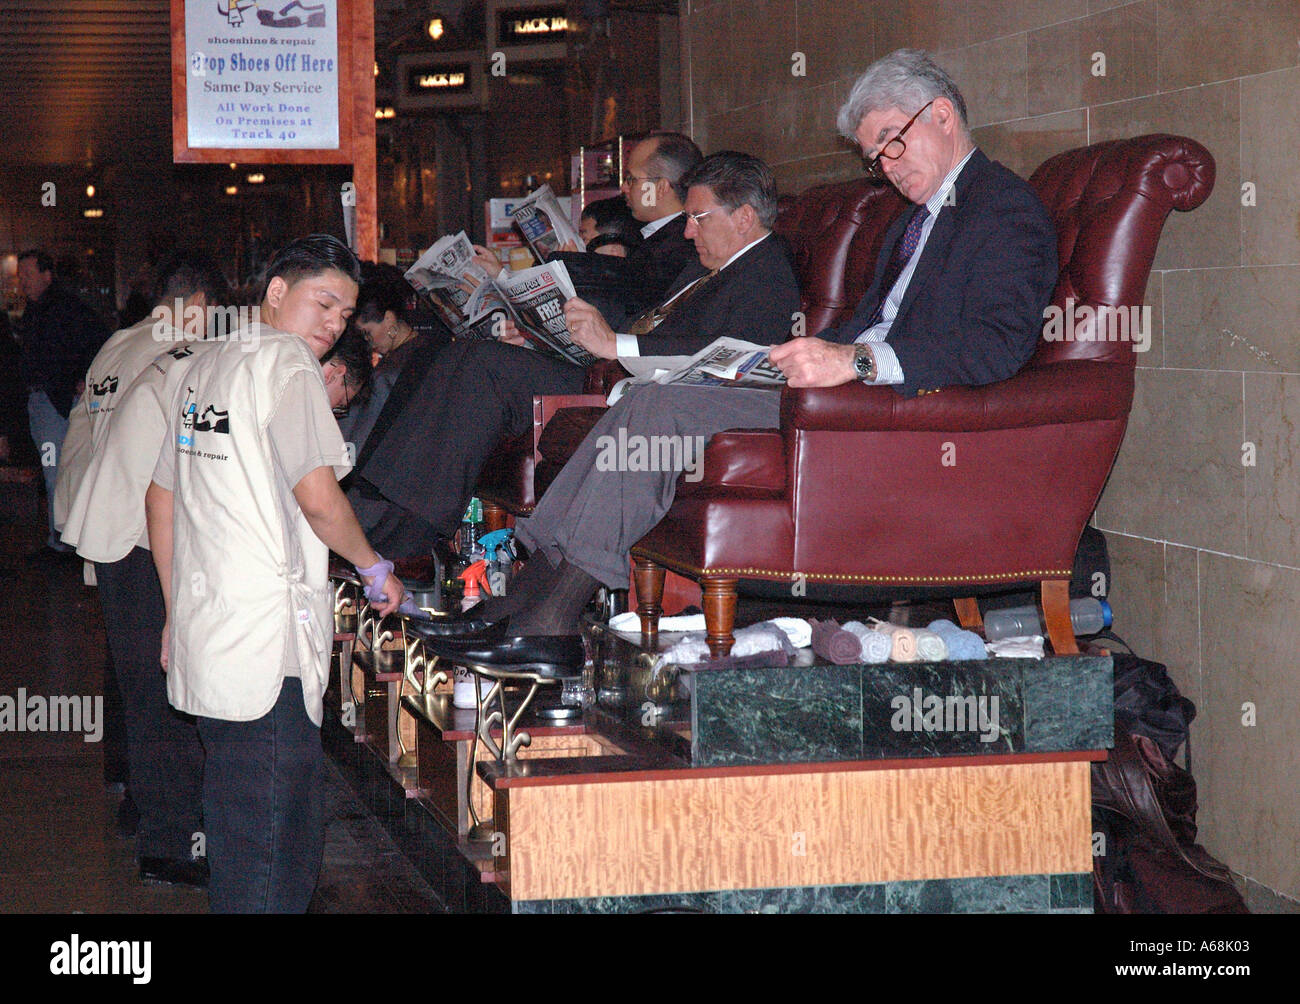 Young boys shoe cleaning and shining at Grand Central Station cleaning business means shoes. - Stock Image